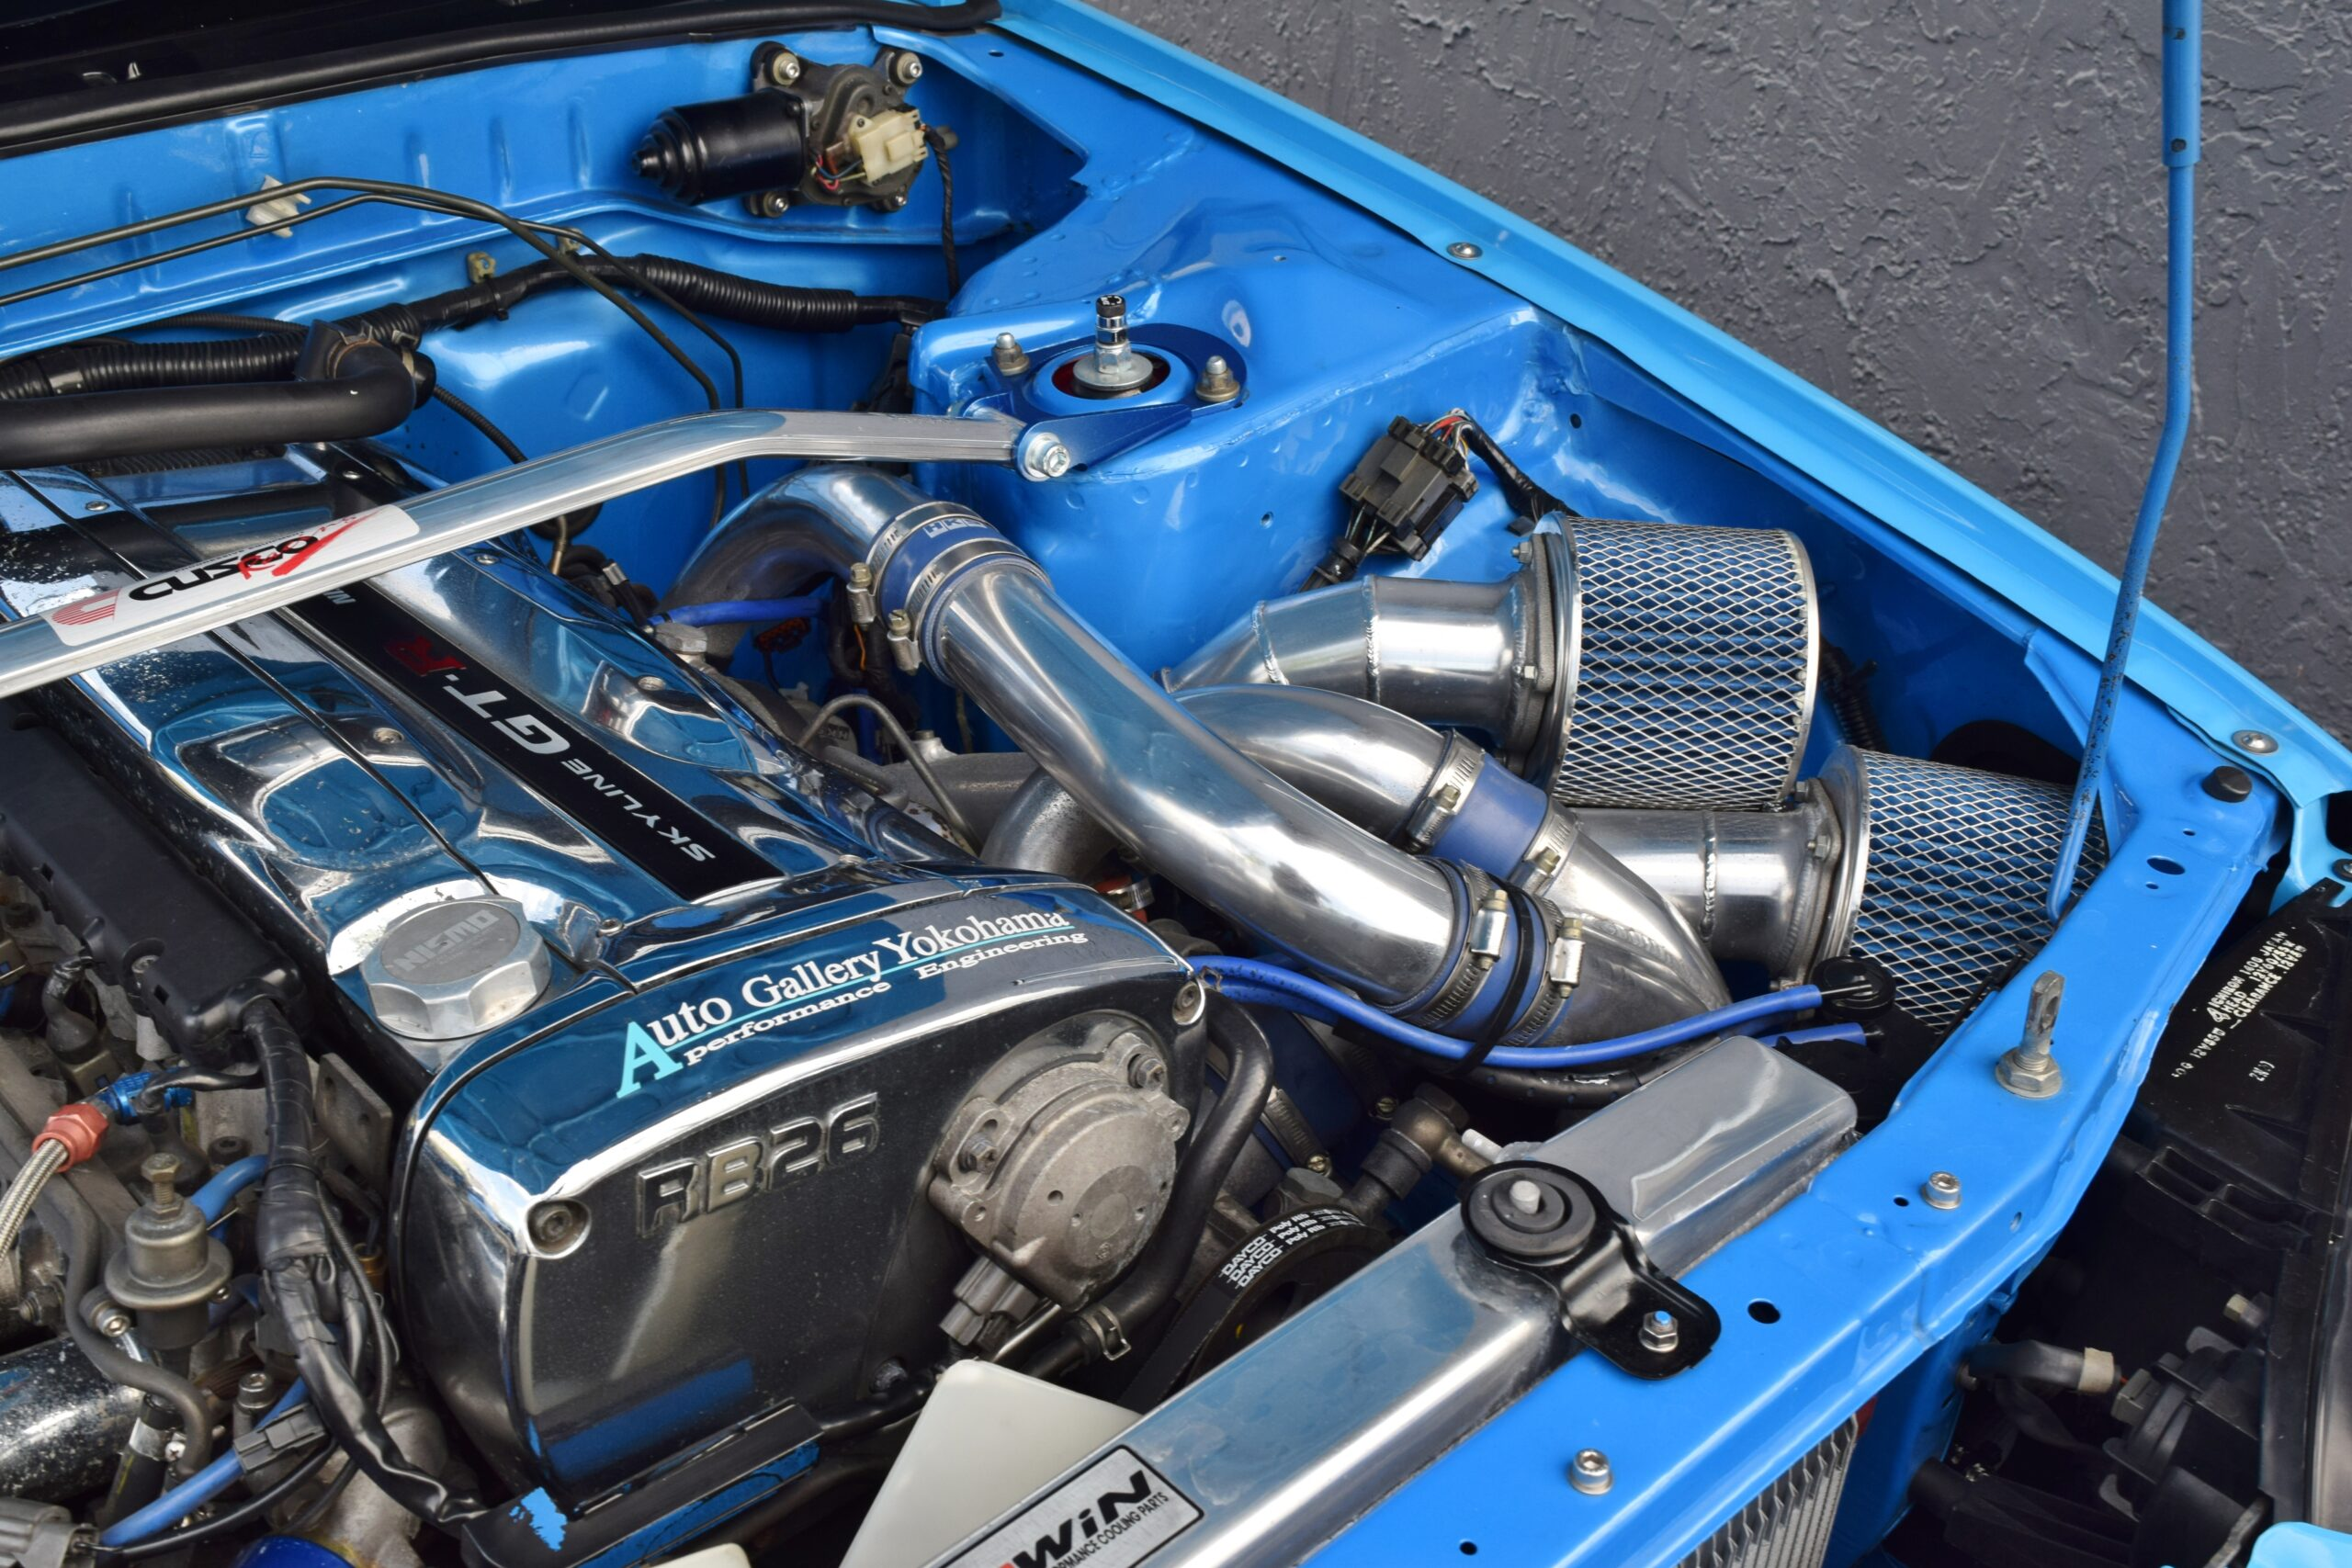 1994 Nissan GT-R R32 Skyline Time Attack/ Street   AG-Y Demo Car   550PS   HKS Turbos   Full Build   Alcon